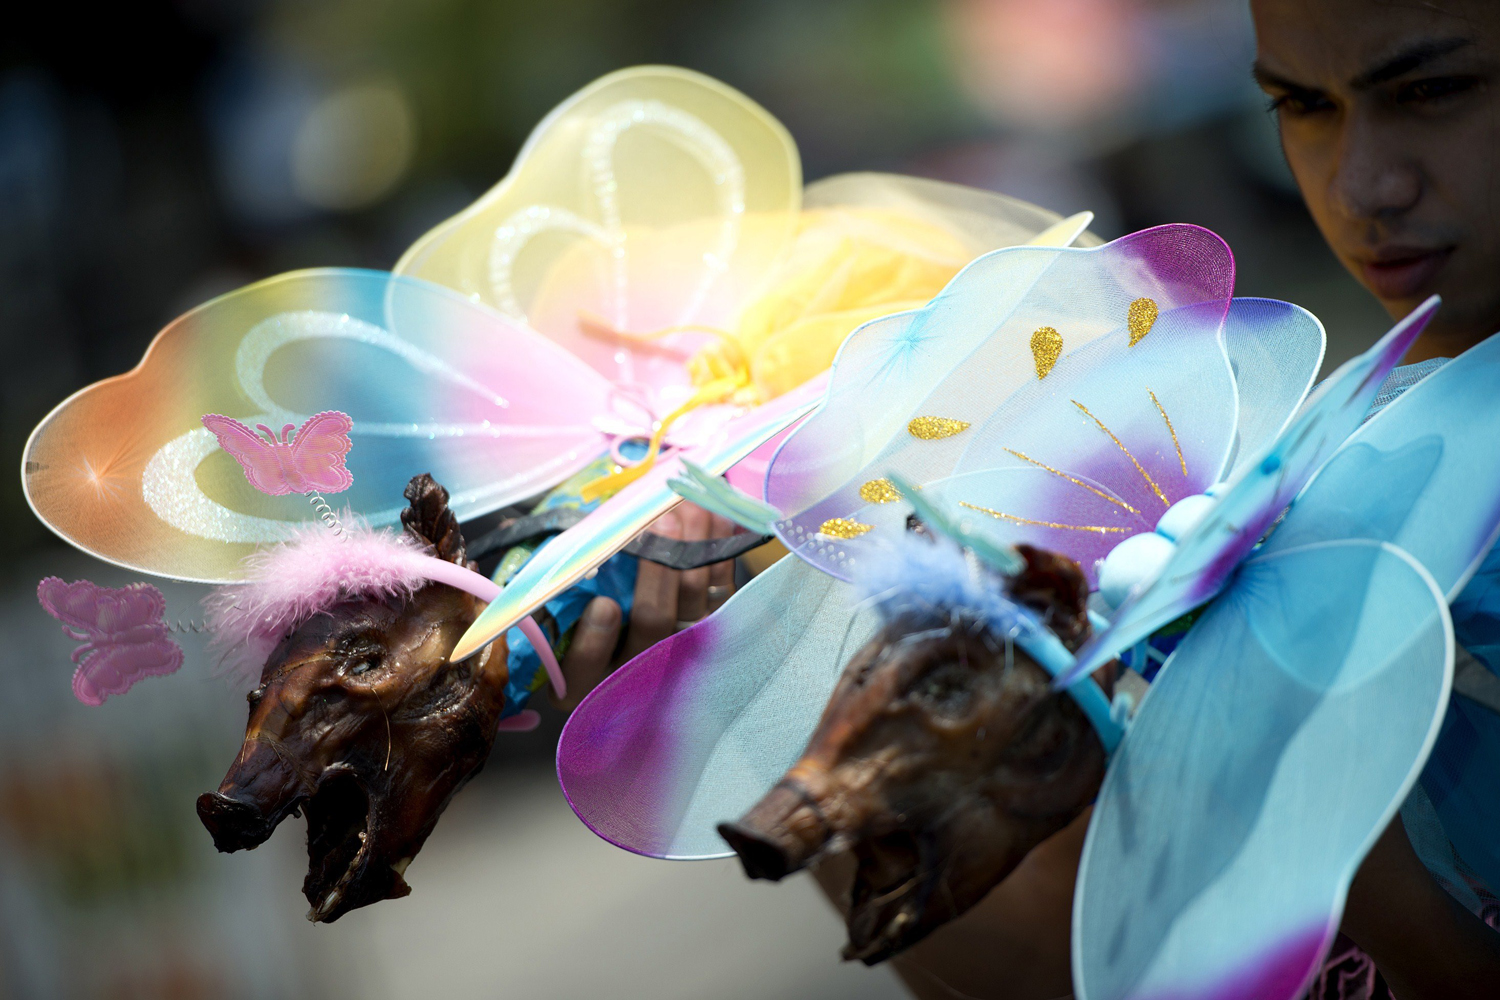 A worker holds two roasted pigs dressed as fairies which will be paraded through the La Loma district of Manila on May 18, 2014, as part of an annual festival.